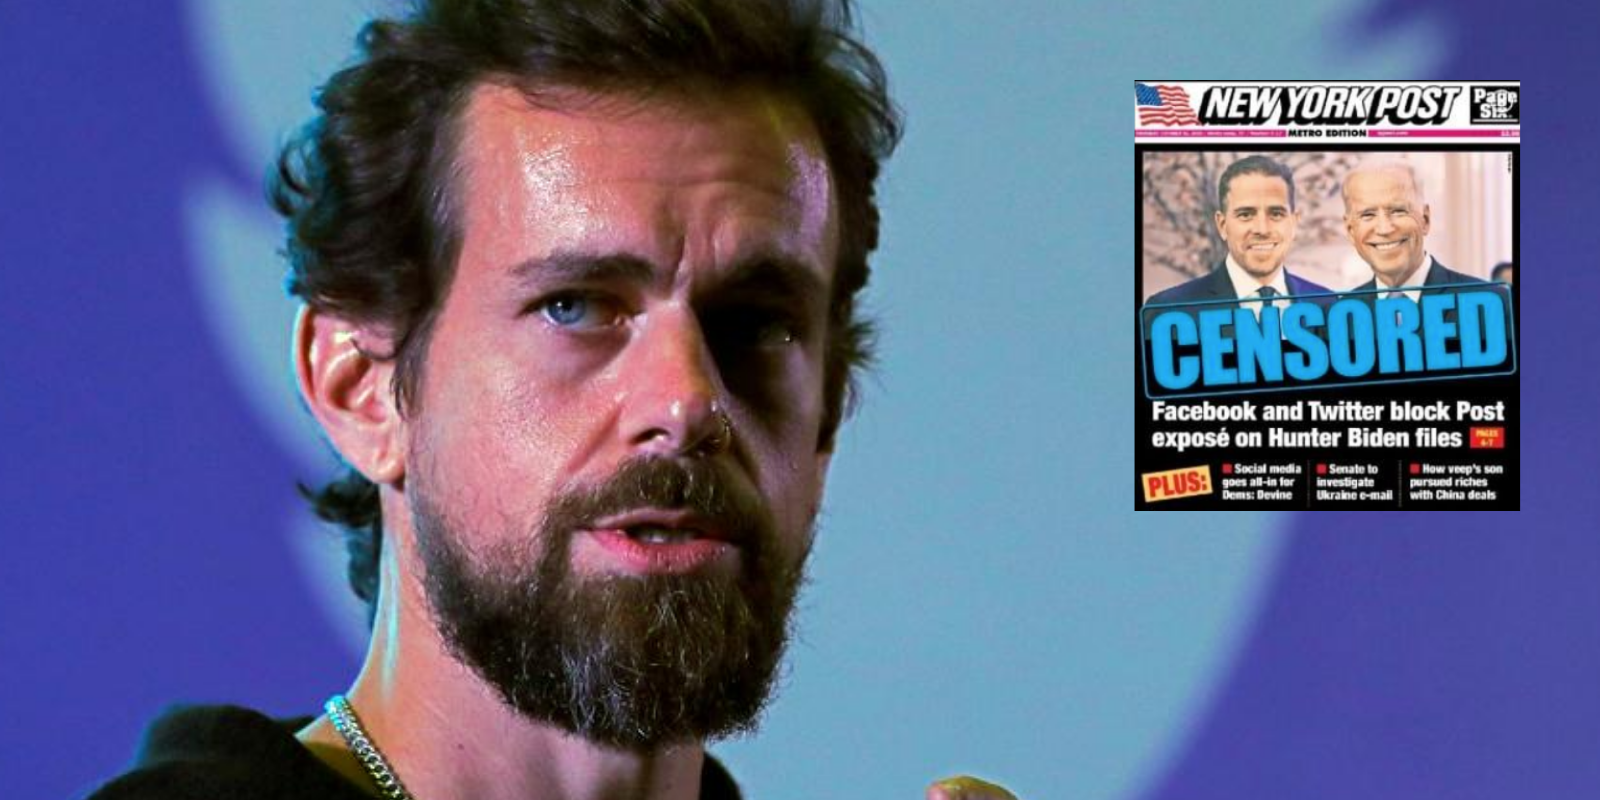 BREAKING: Twitter CEO Jack Dorsey will be subpoenaed to testify before Congress after censorship scandal